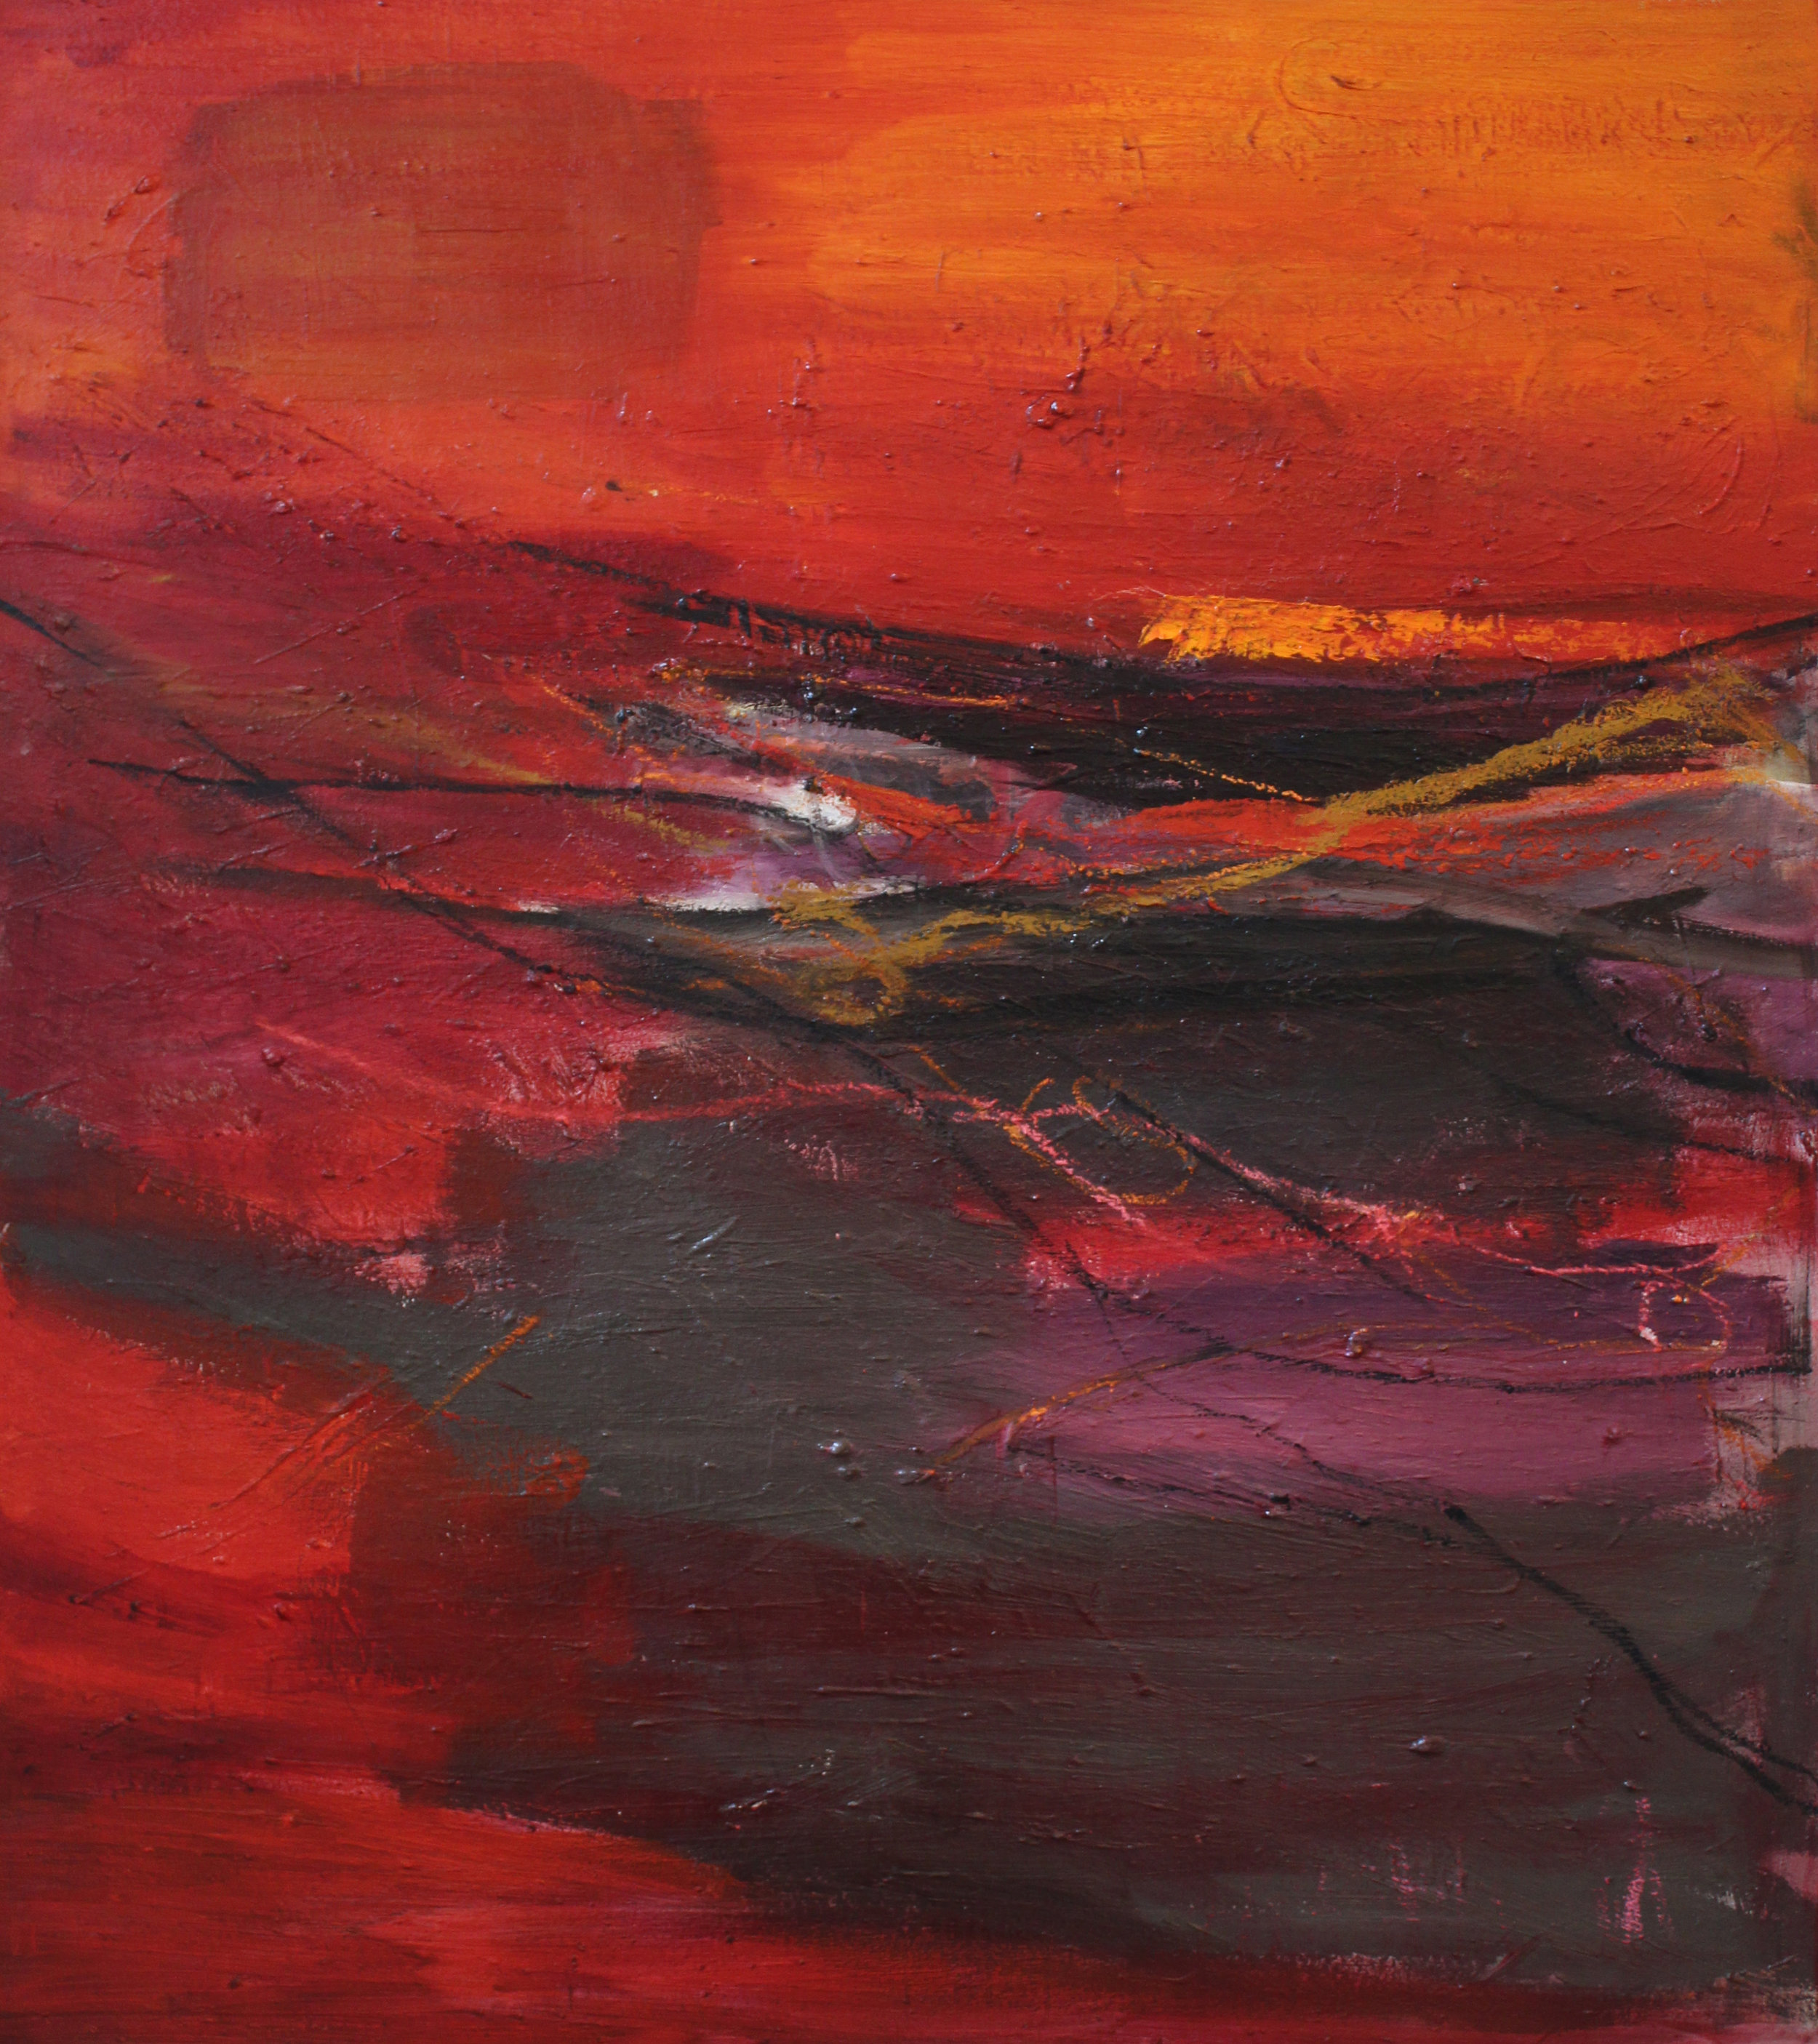 Painting_8_Rolling Red Scape_2.jpg